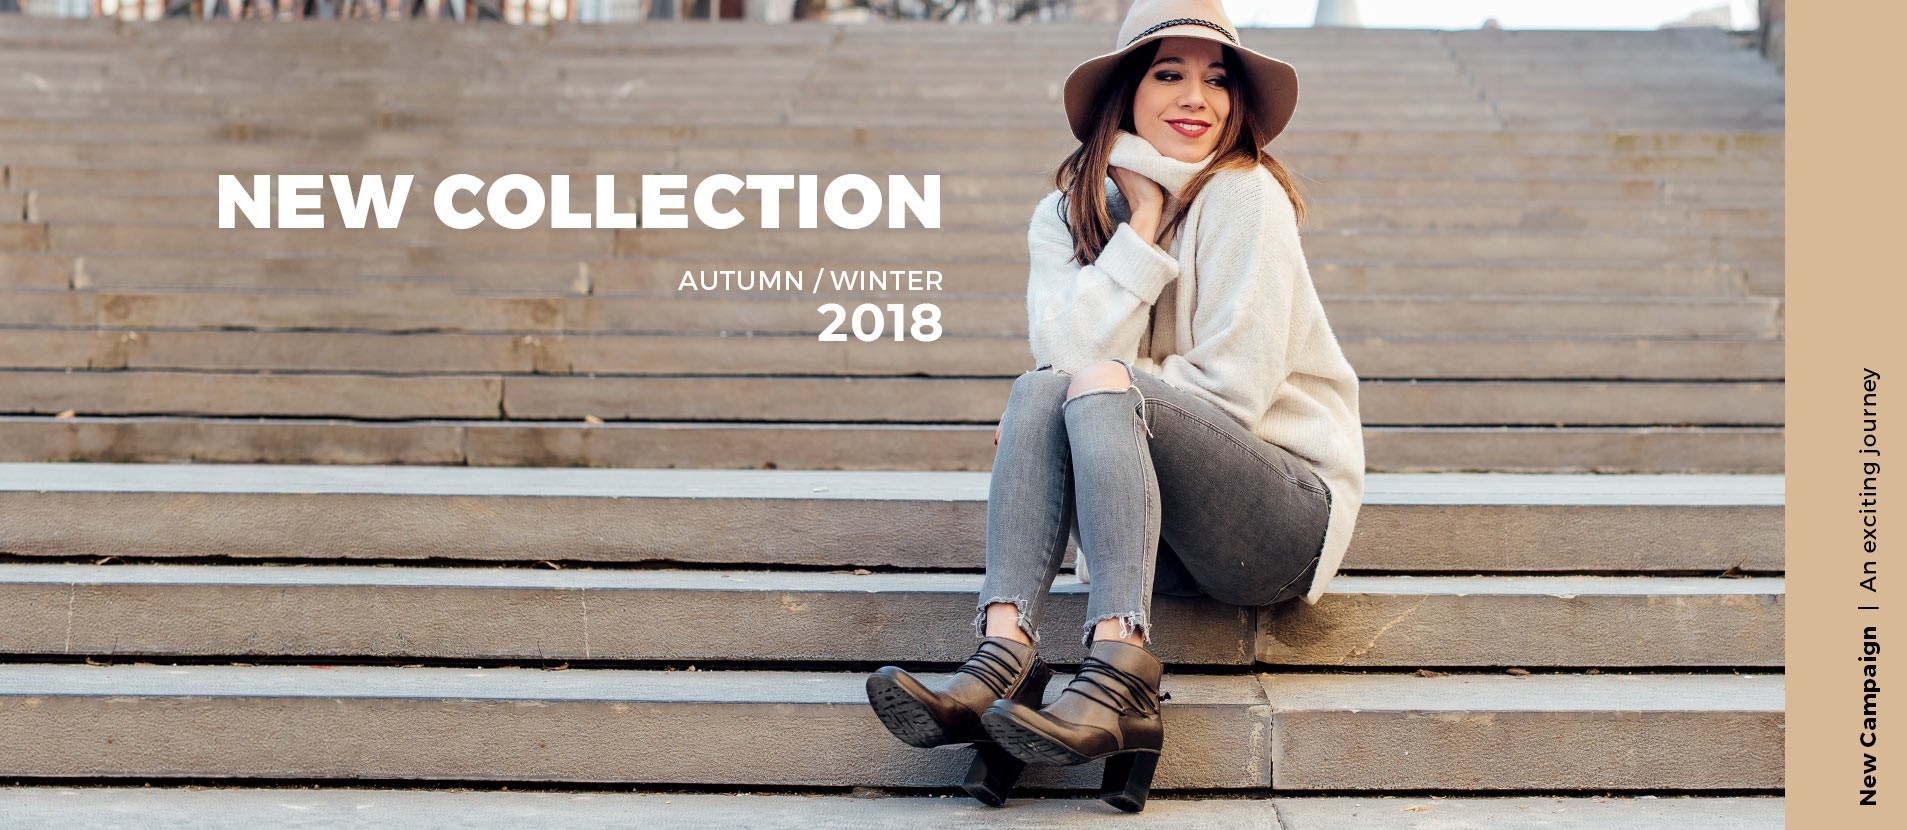 Autumn & Winter 2018